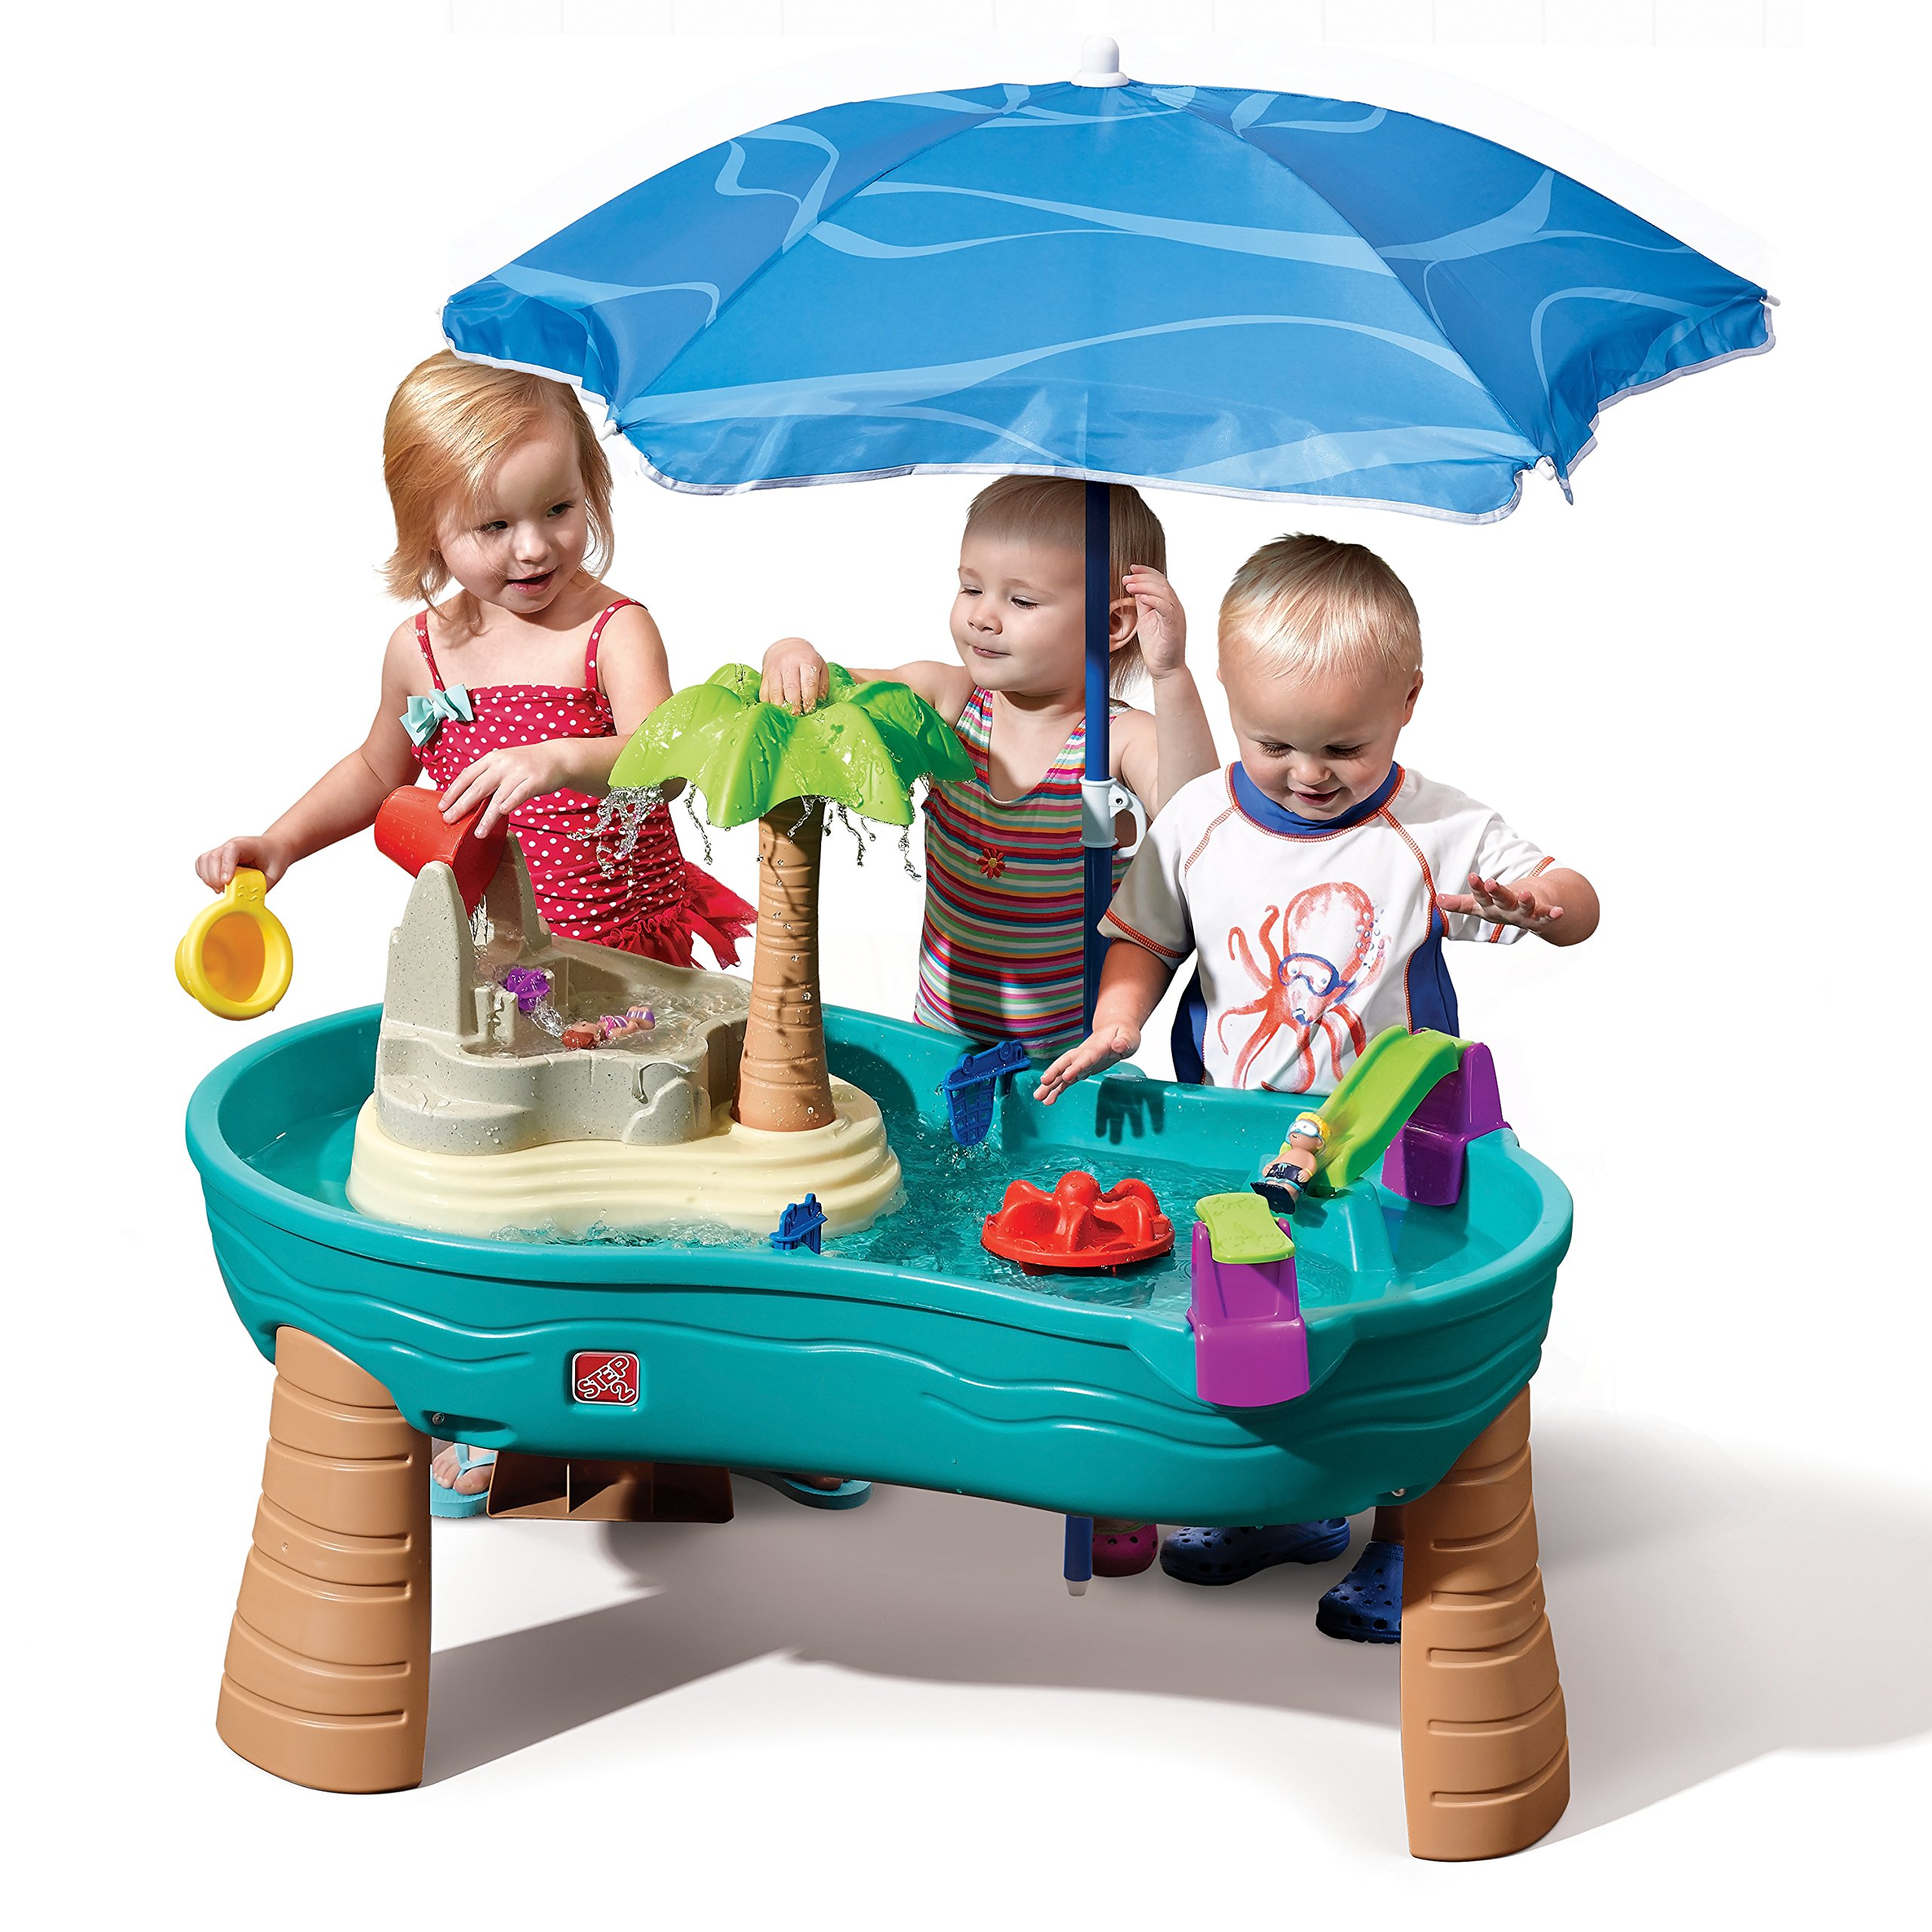 Step2 Splish Splash Seas Water Table | Kids Water Table with Umbrella & 10-Pc Accessory Set by Step2